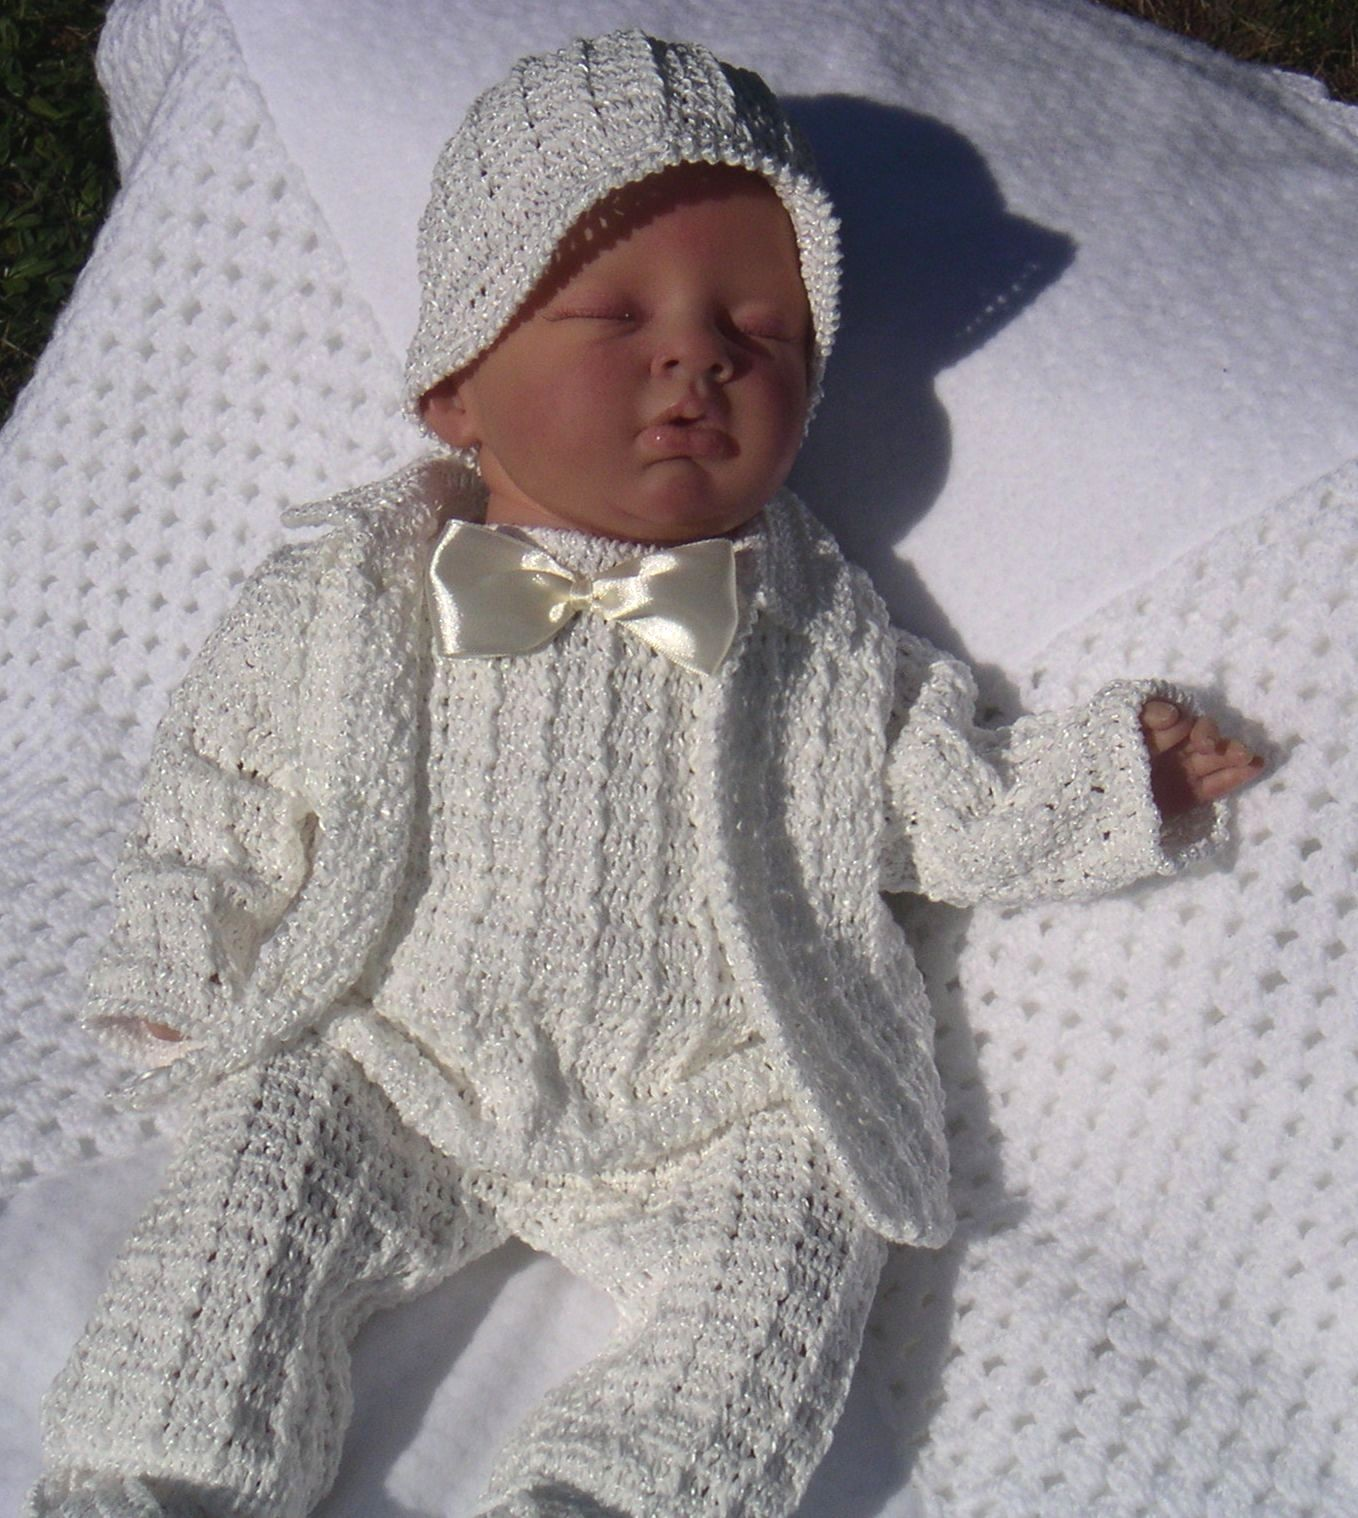 a8a6f61acb1a Amazing Handmade Crochet Christening Outfits for your baby boy ...